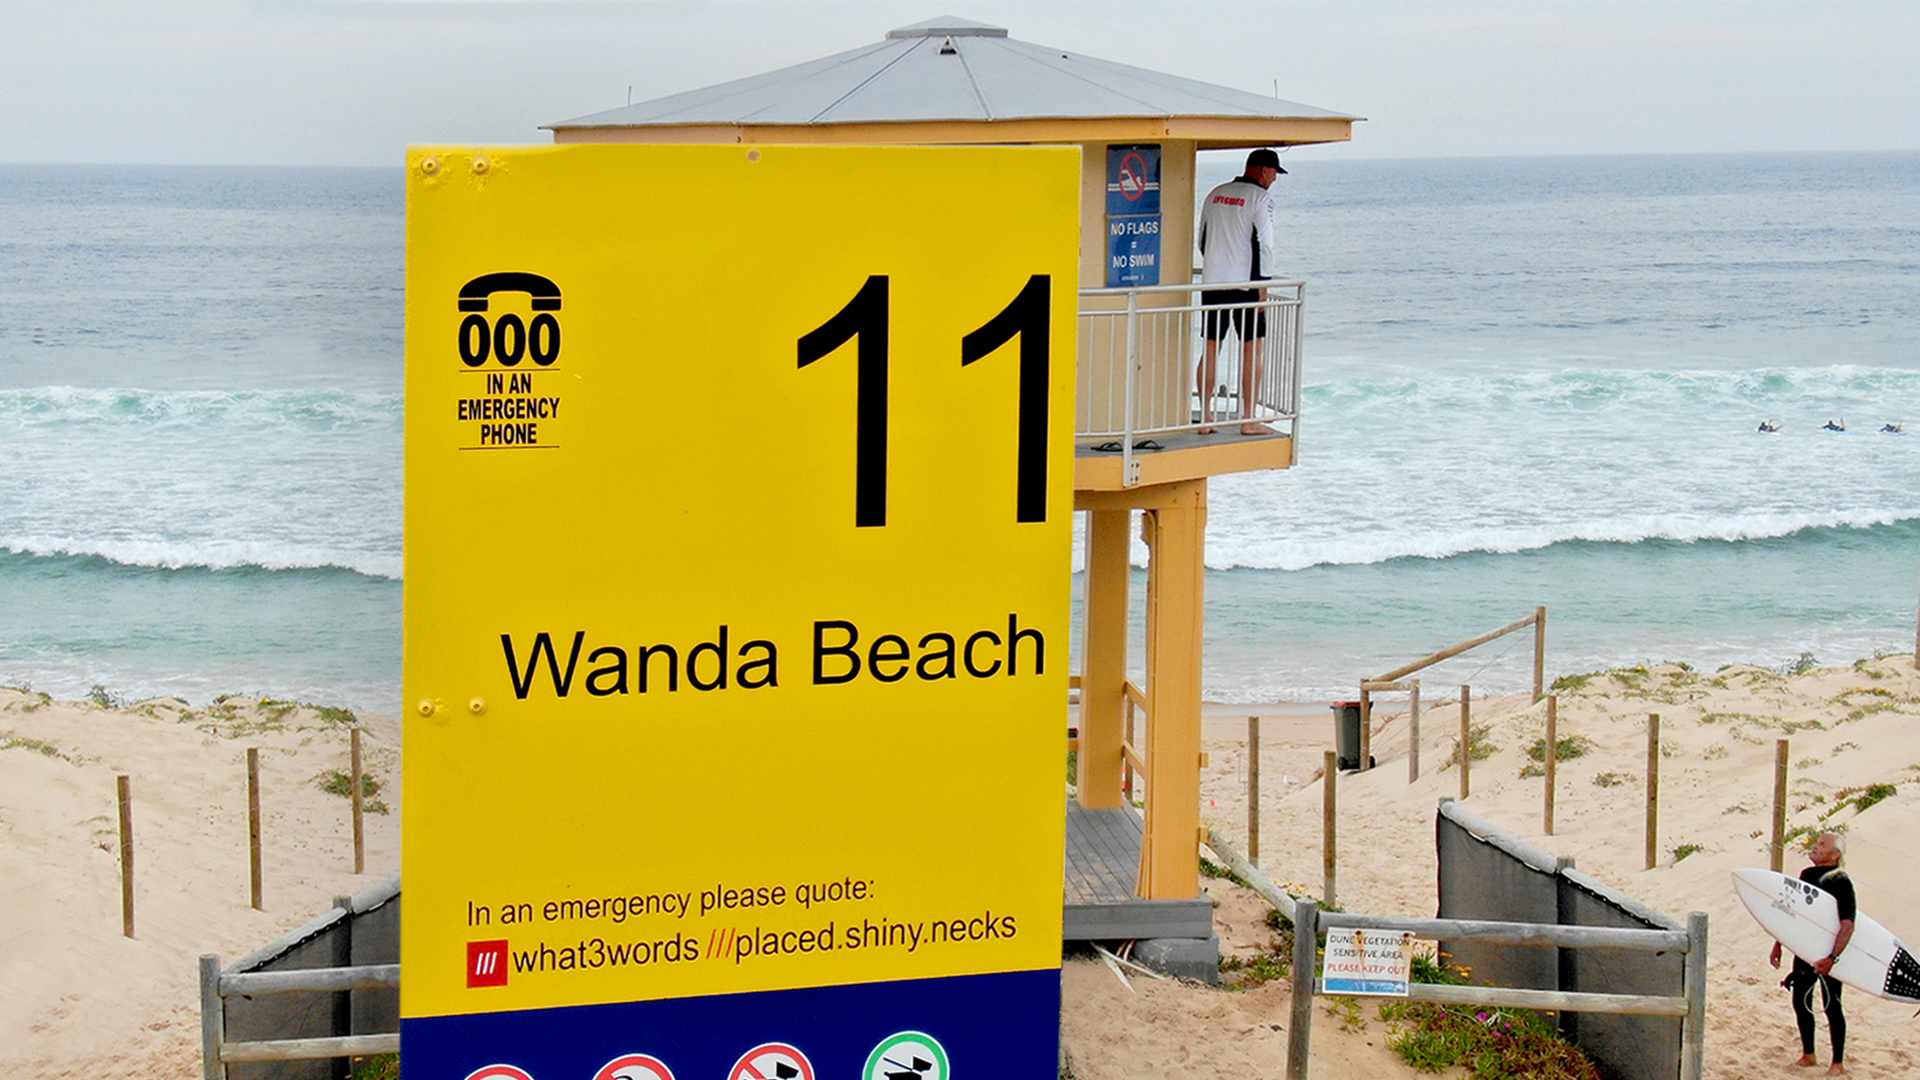 Wanda beach sign with what3words address in case of emergency